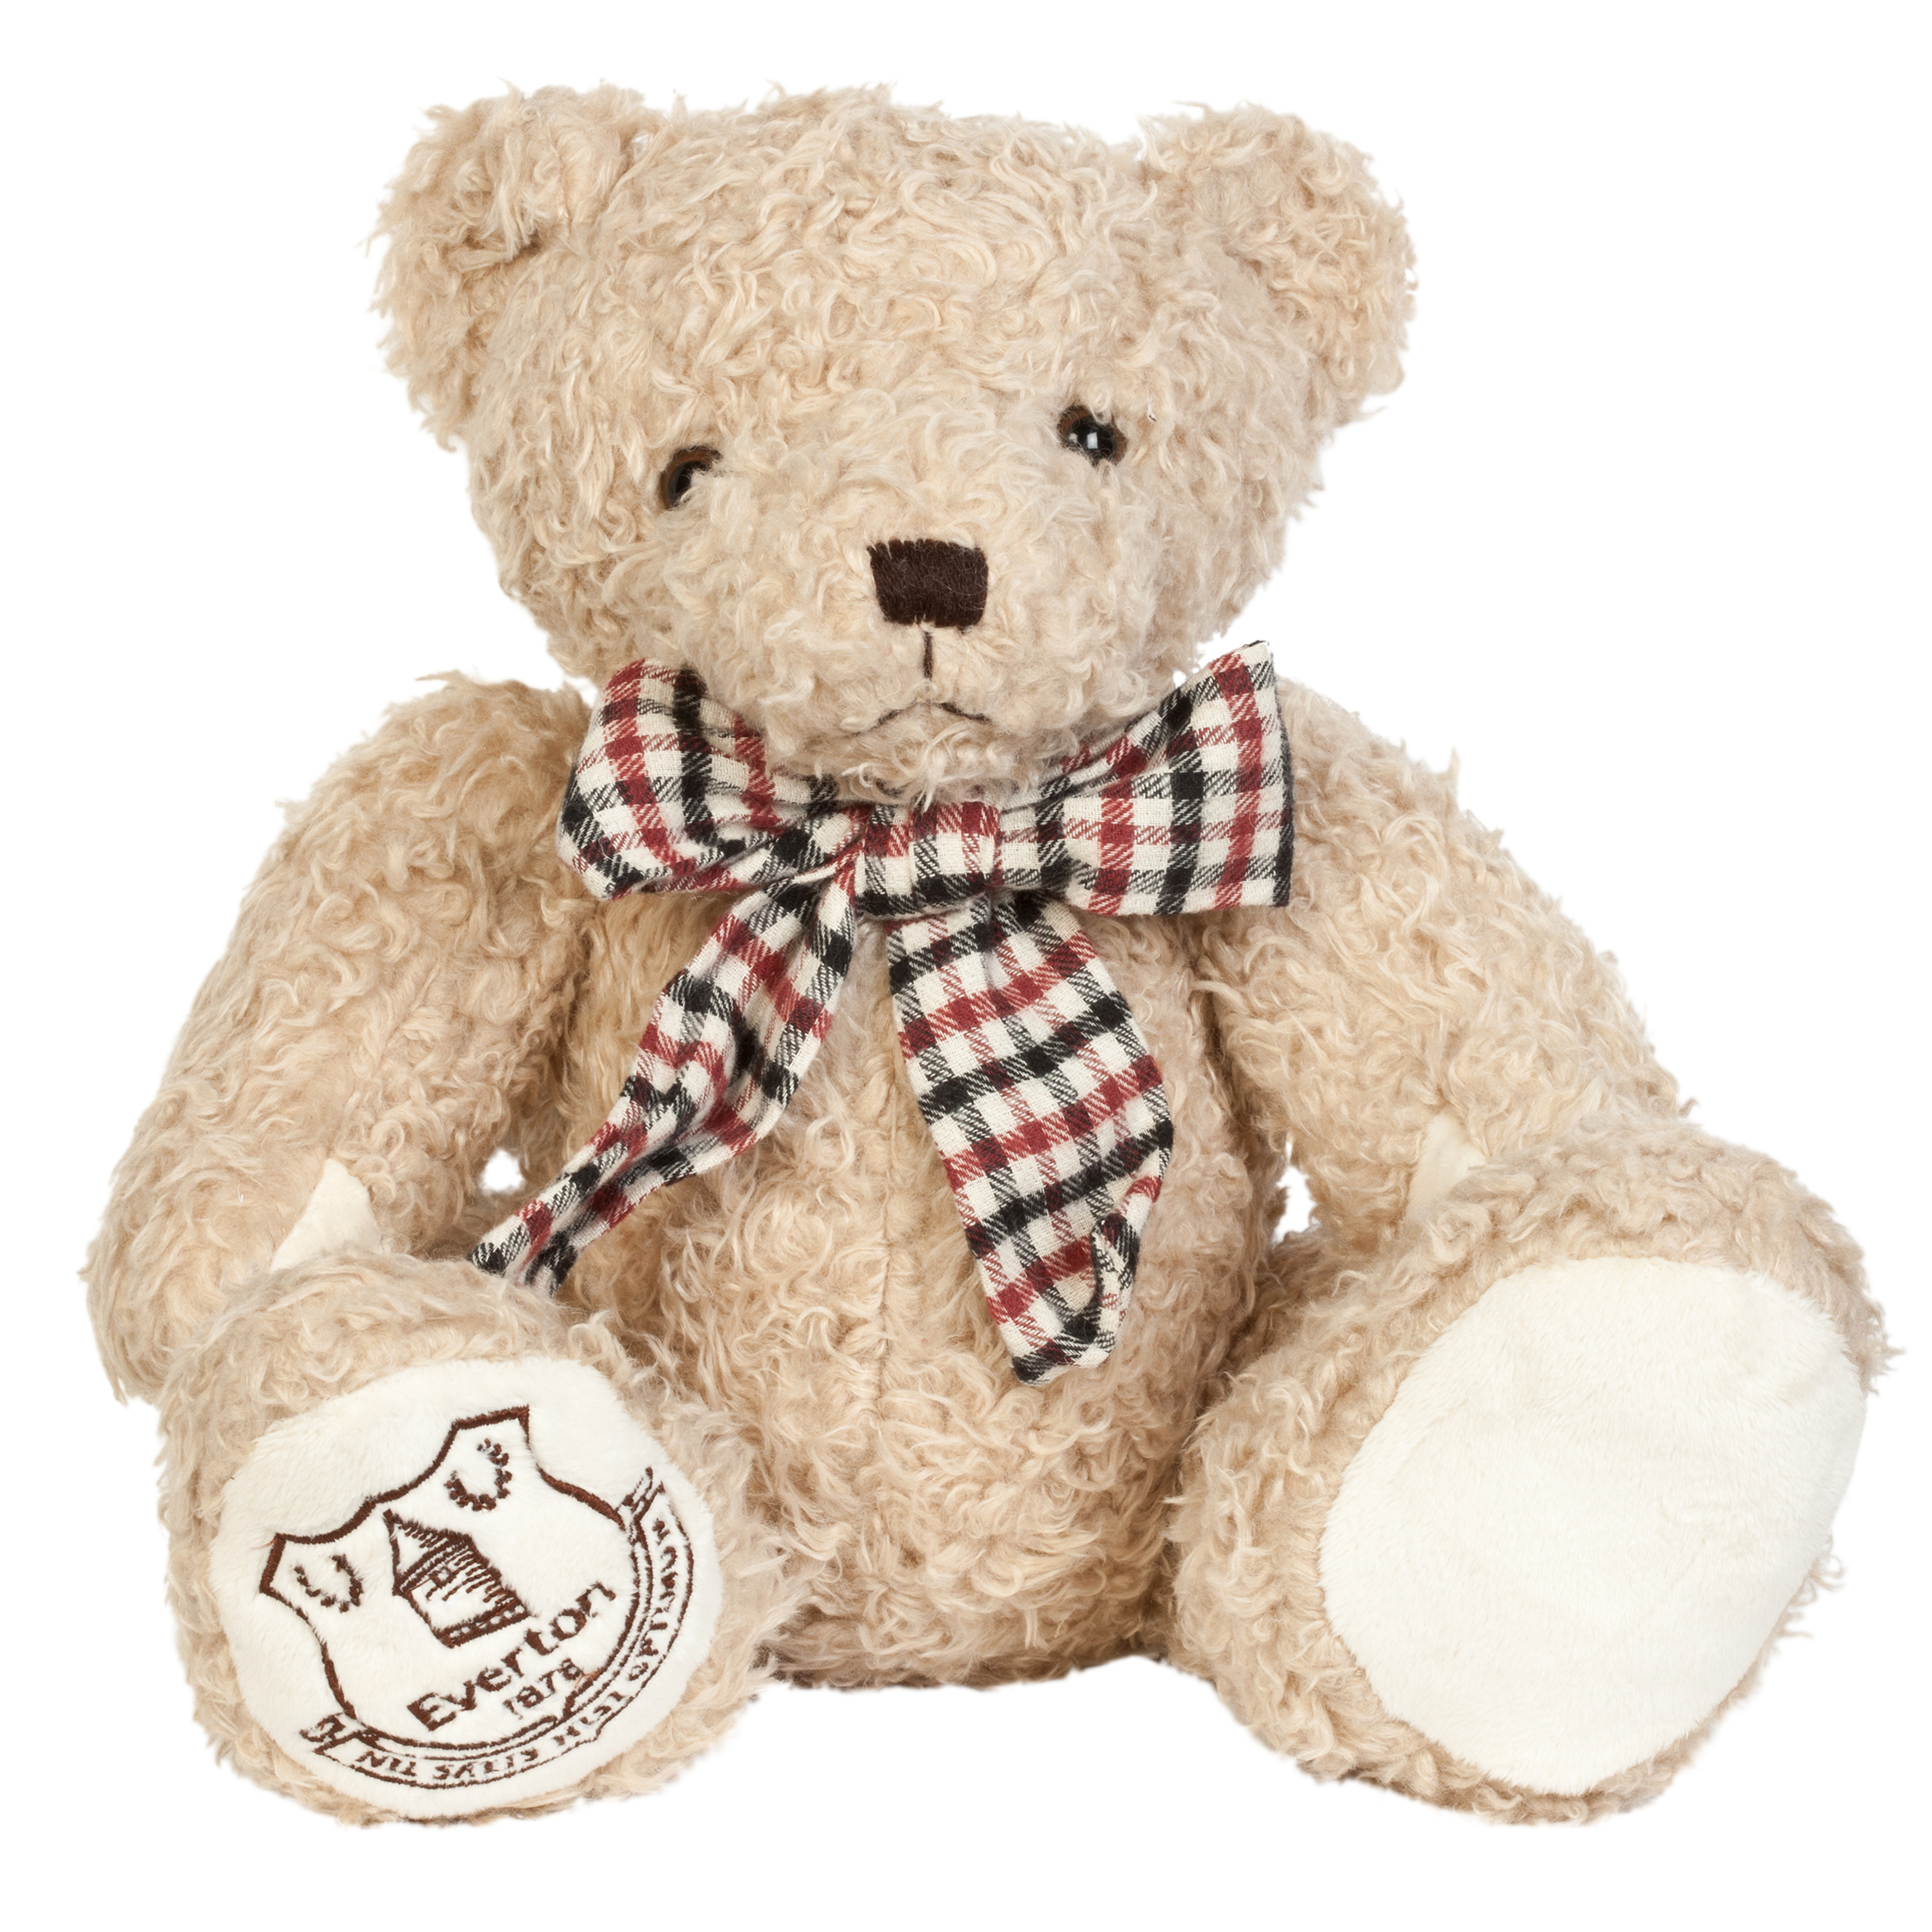 Everton Retro Teddy Bear